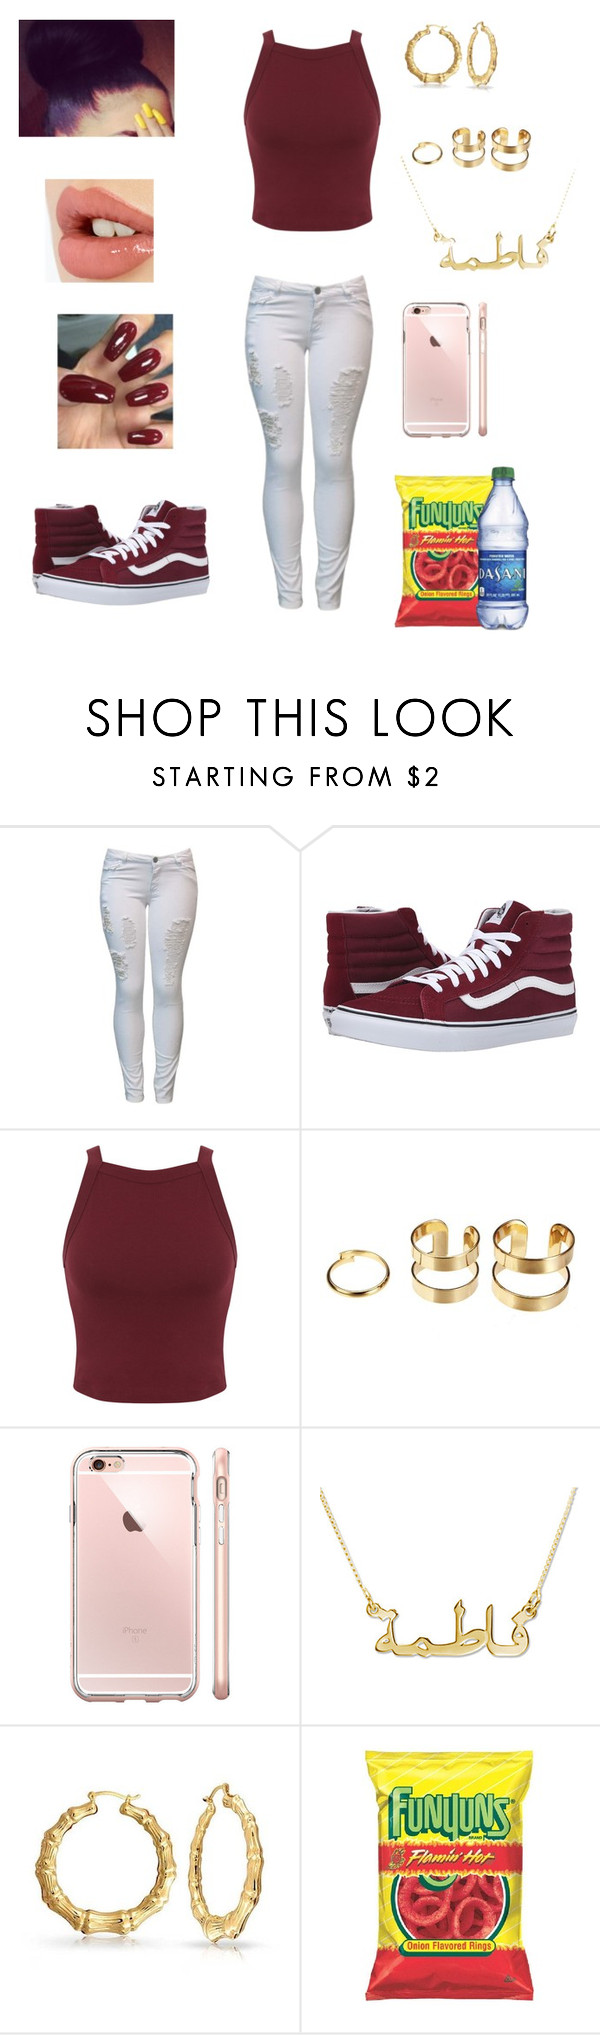 """""""- Yeah, She's Cute - [March 8, 2016]"""" by swaggfashion ❤ liked on Polyvore featuring Vans, Miss Selfridge, Bling Jewelry and Charlotte Tilbury"""